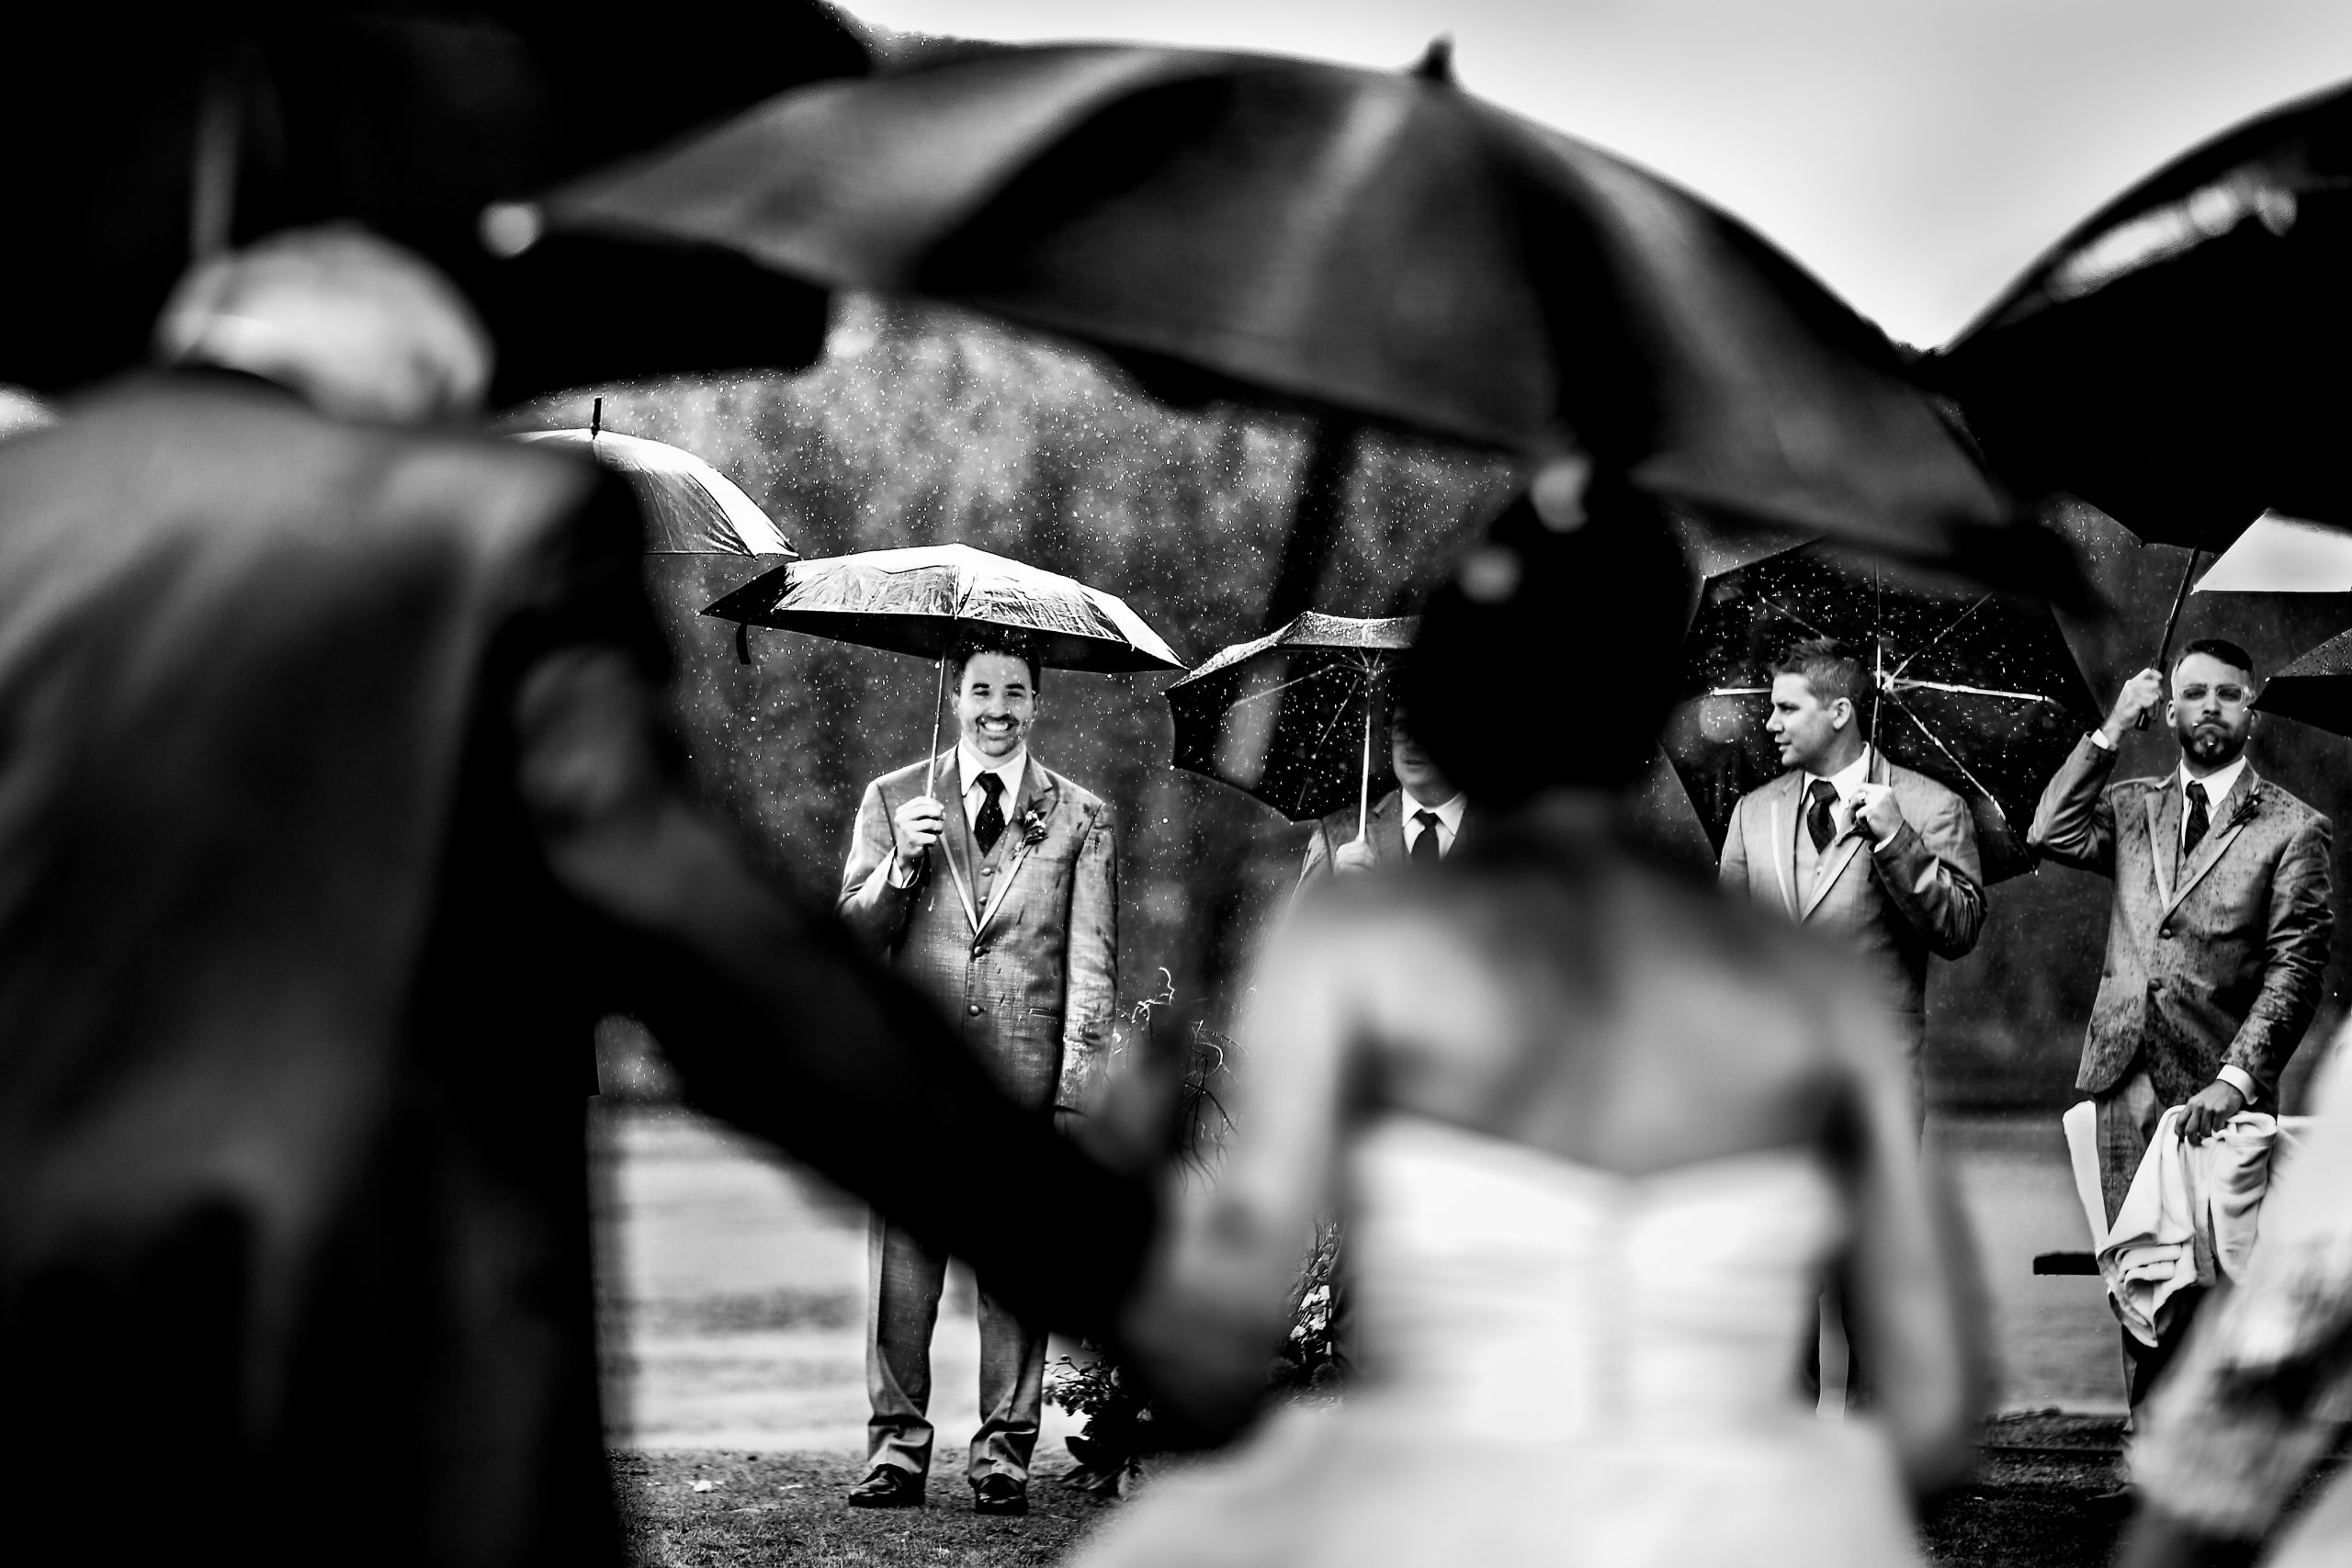 During a rainy day, holding umbrellas, the groom smiles as he sees the bride